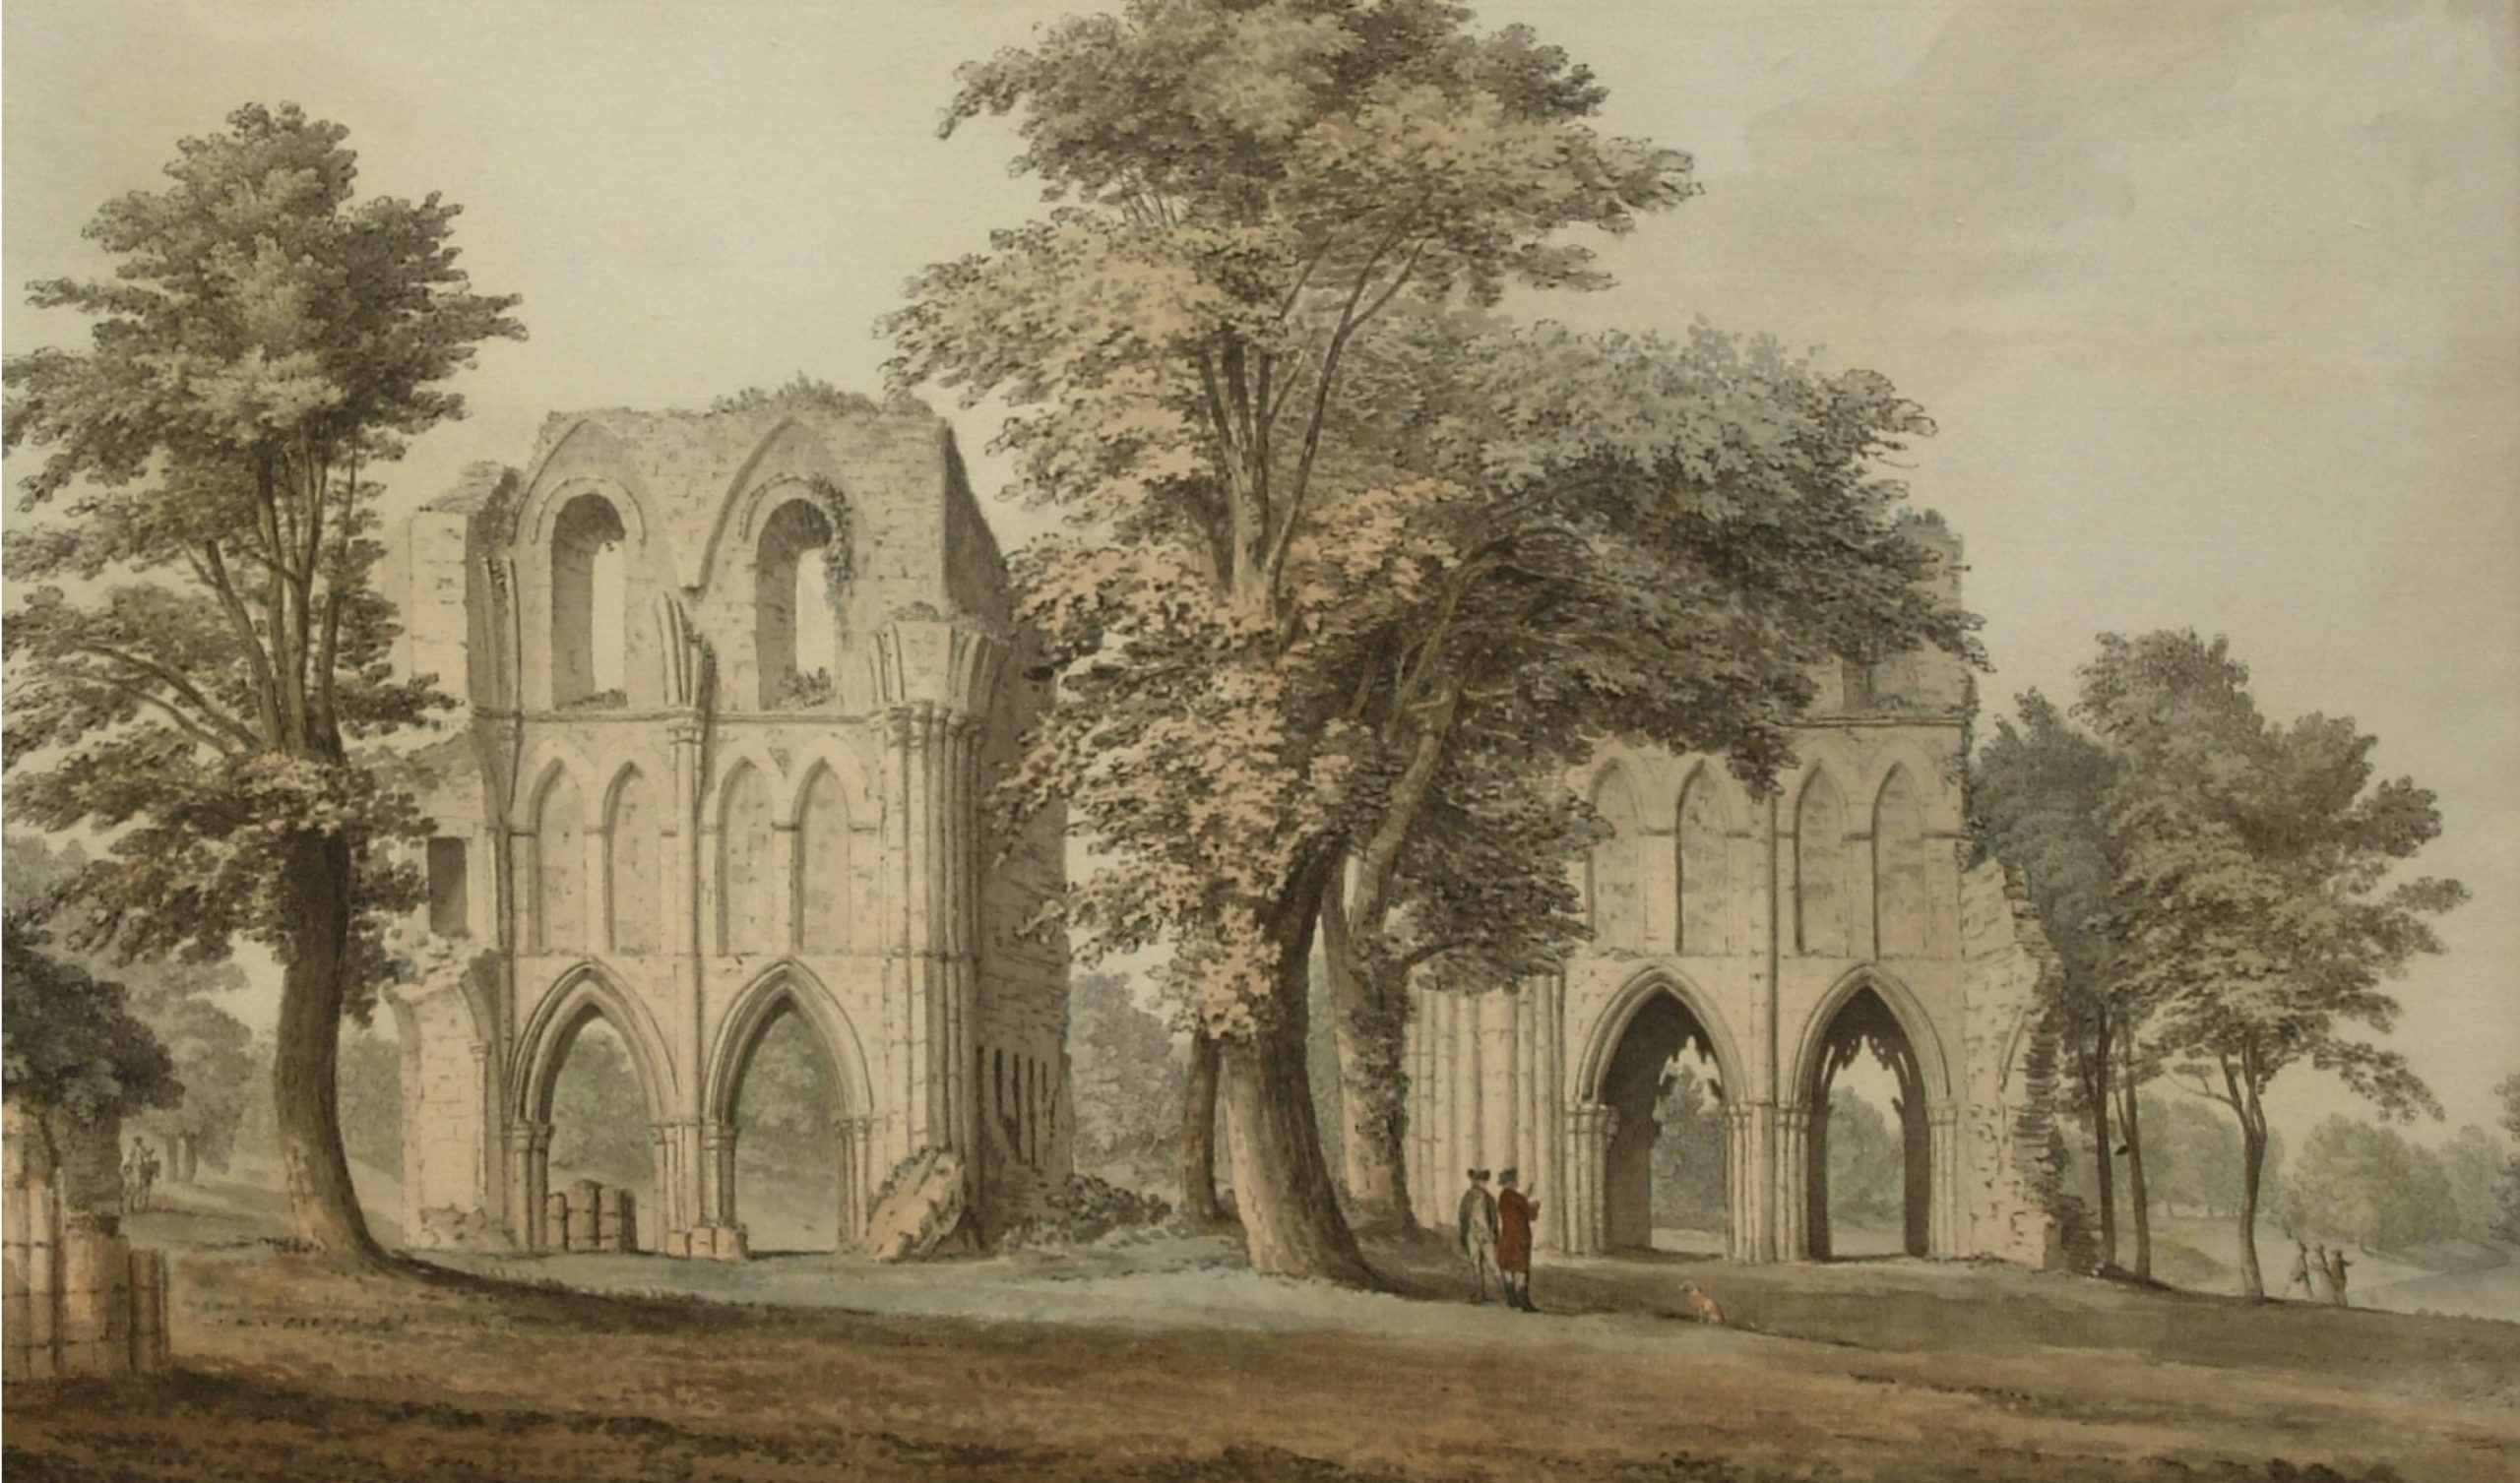 S H Grimm, Roche Abbey, after conservation